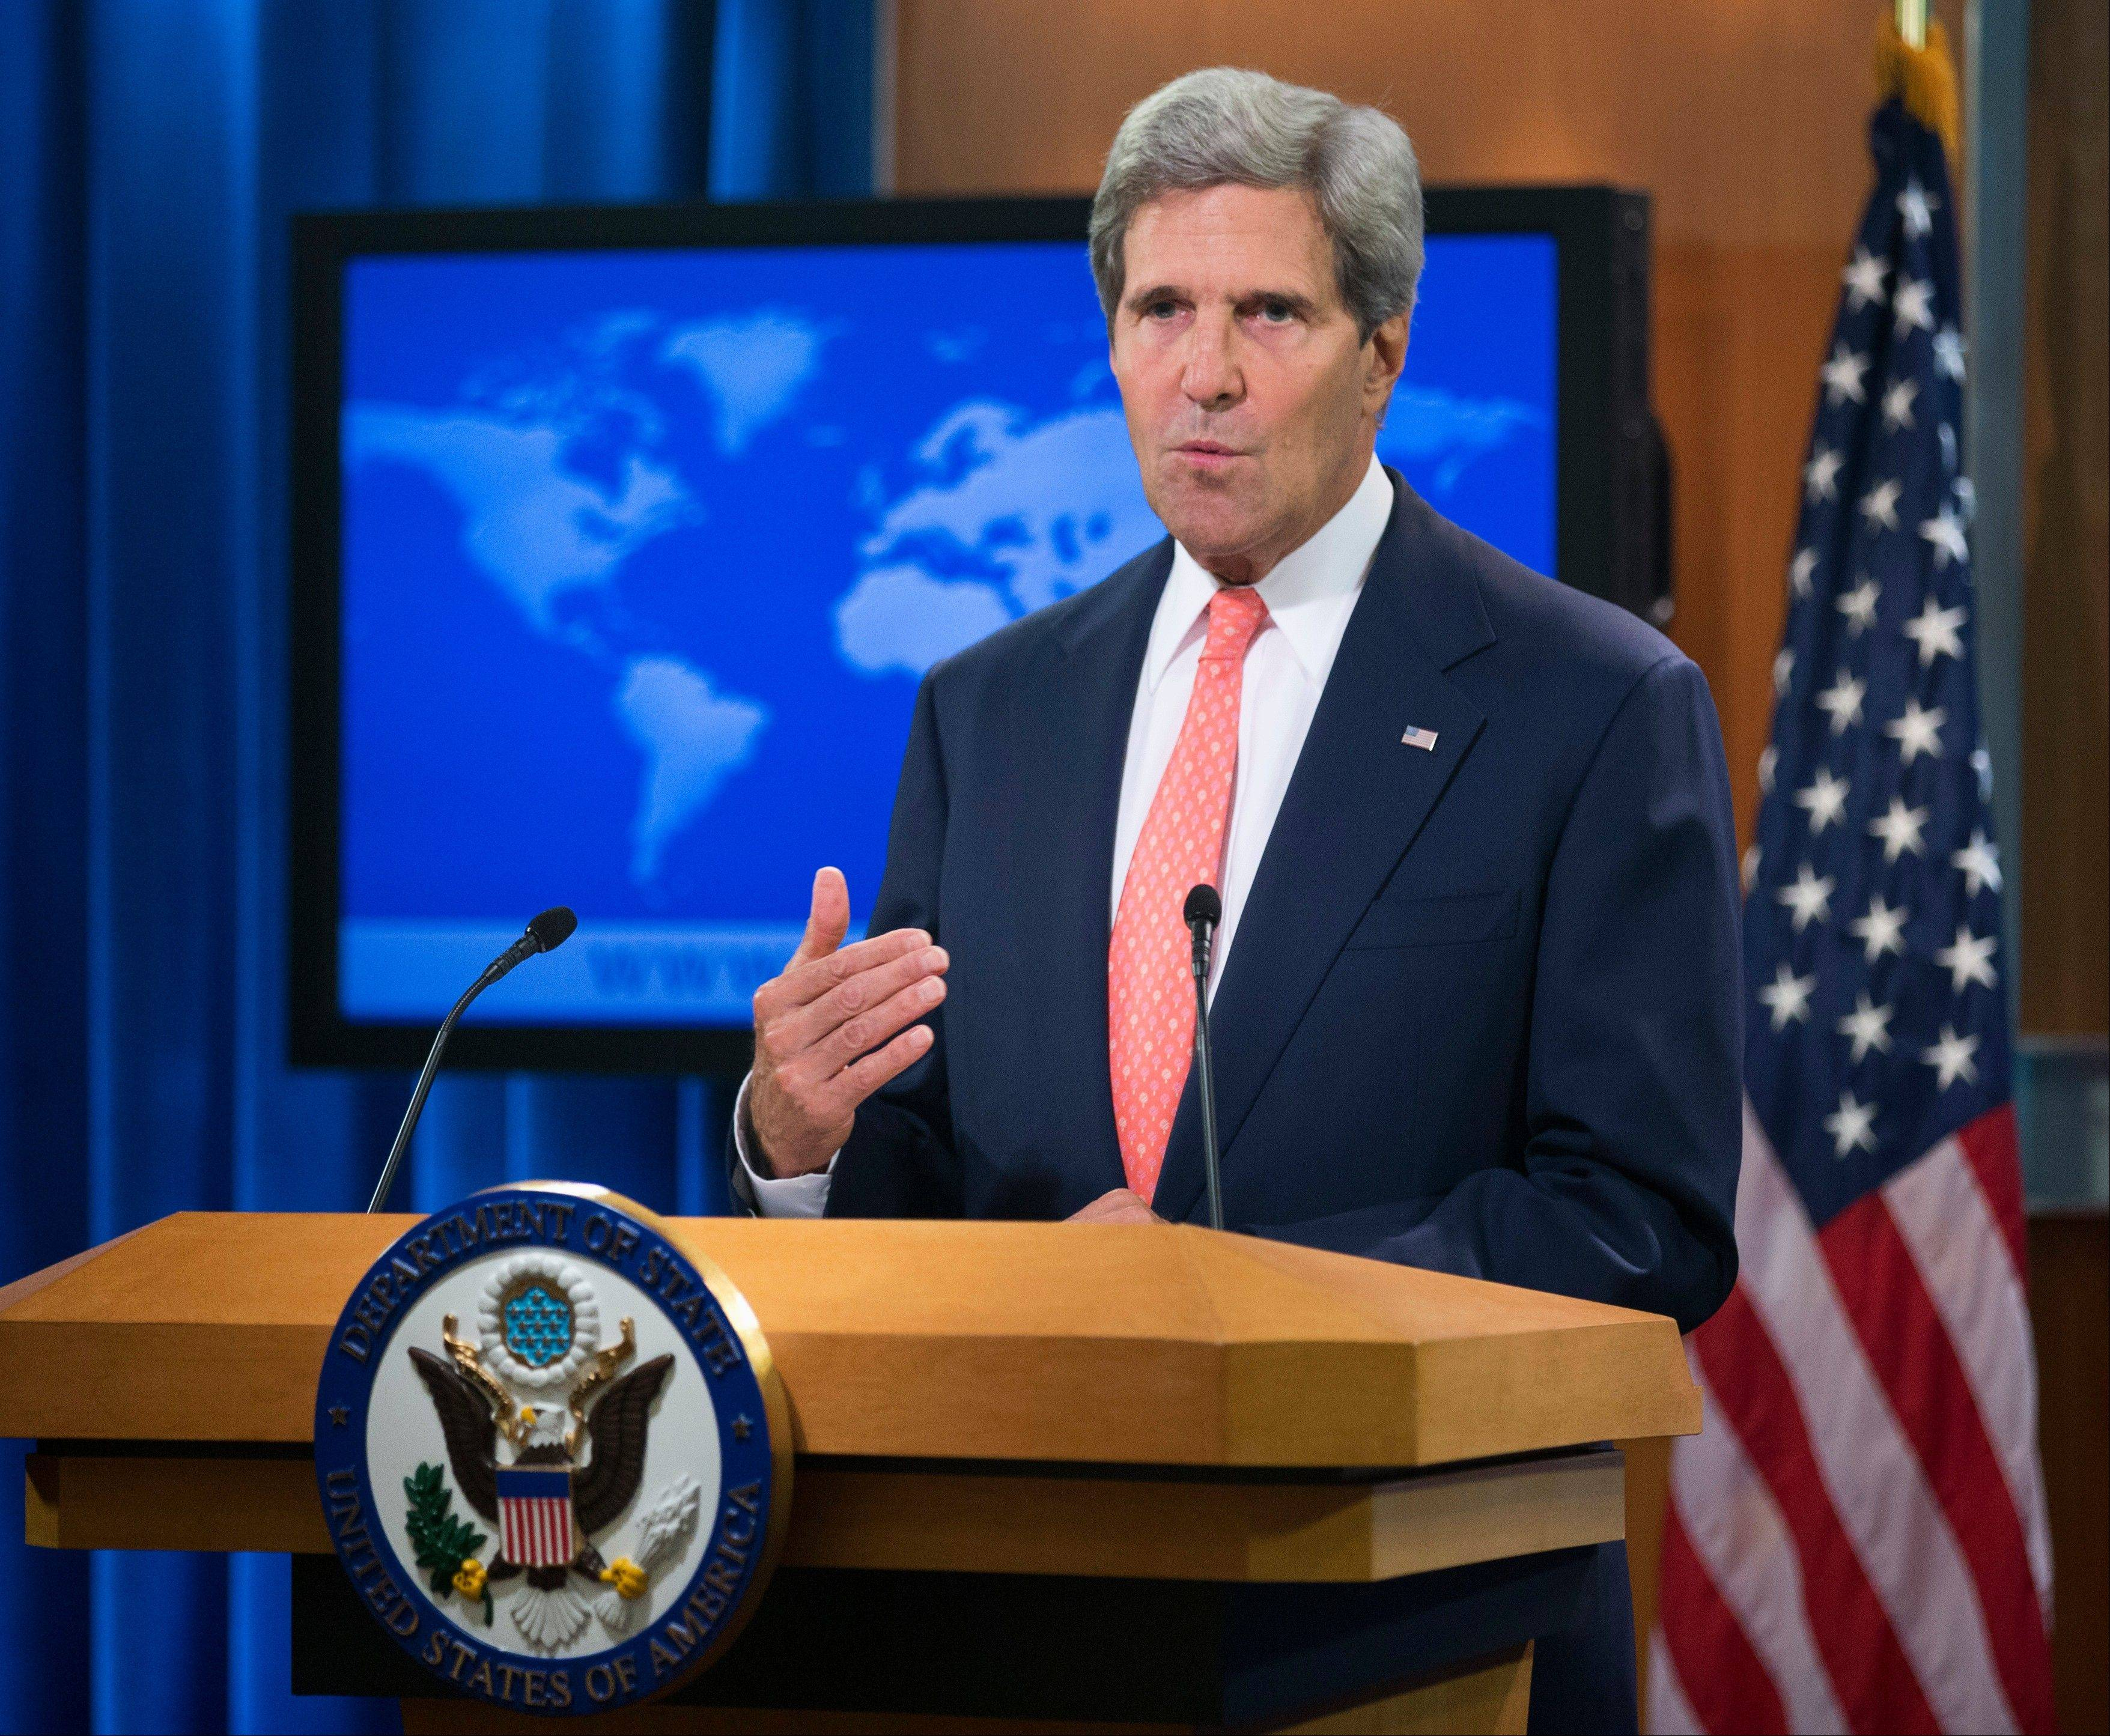 Secretary of State John Kerry said Monday that chemical weapons were used in Syria and accused Assad of destroying the evidence.